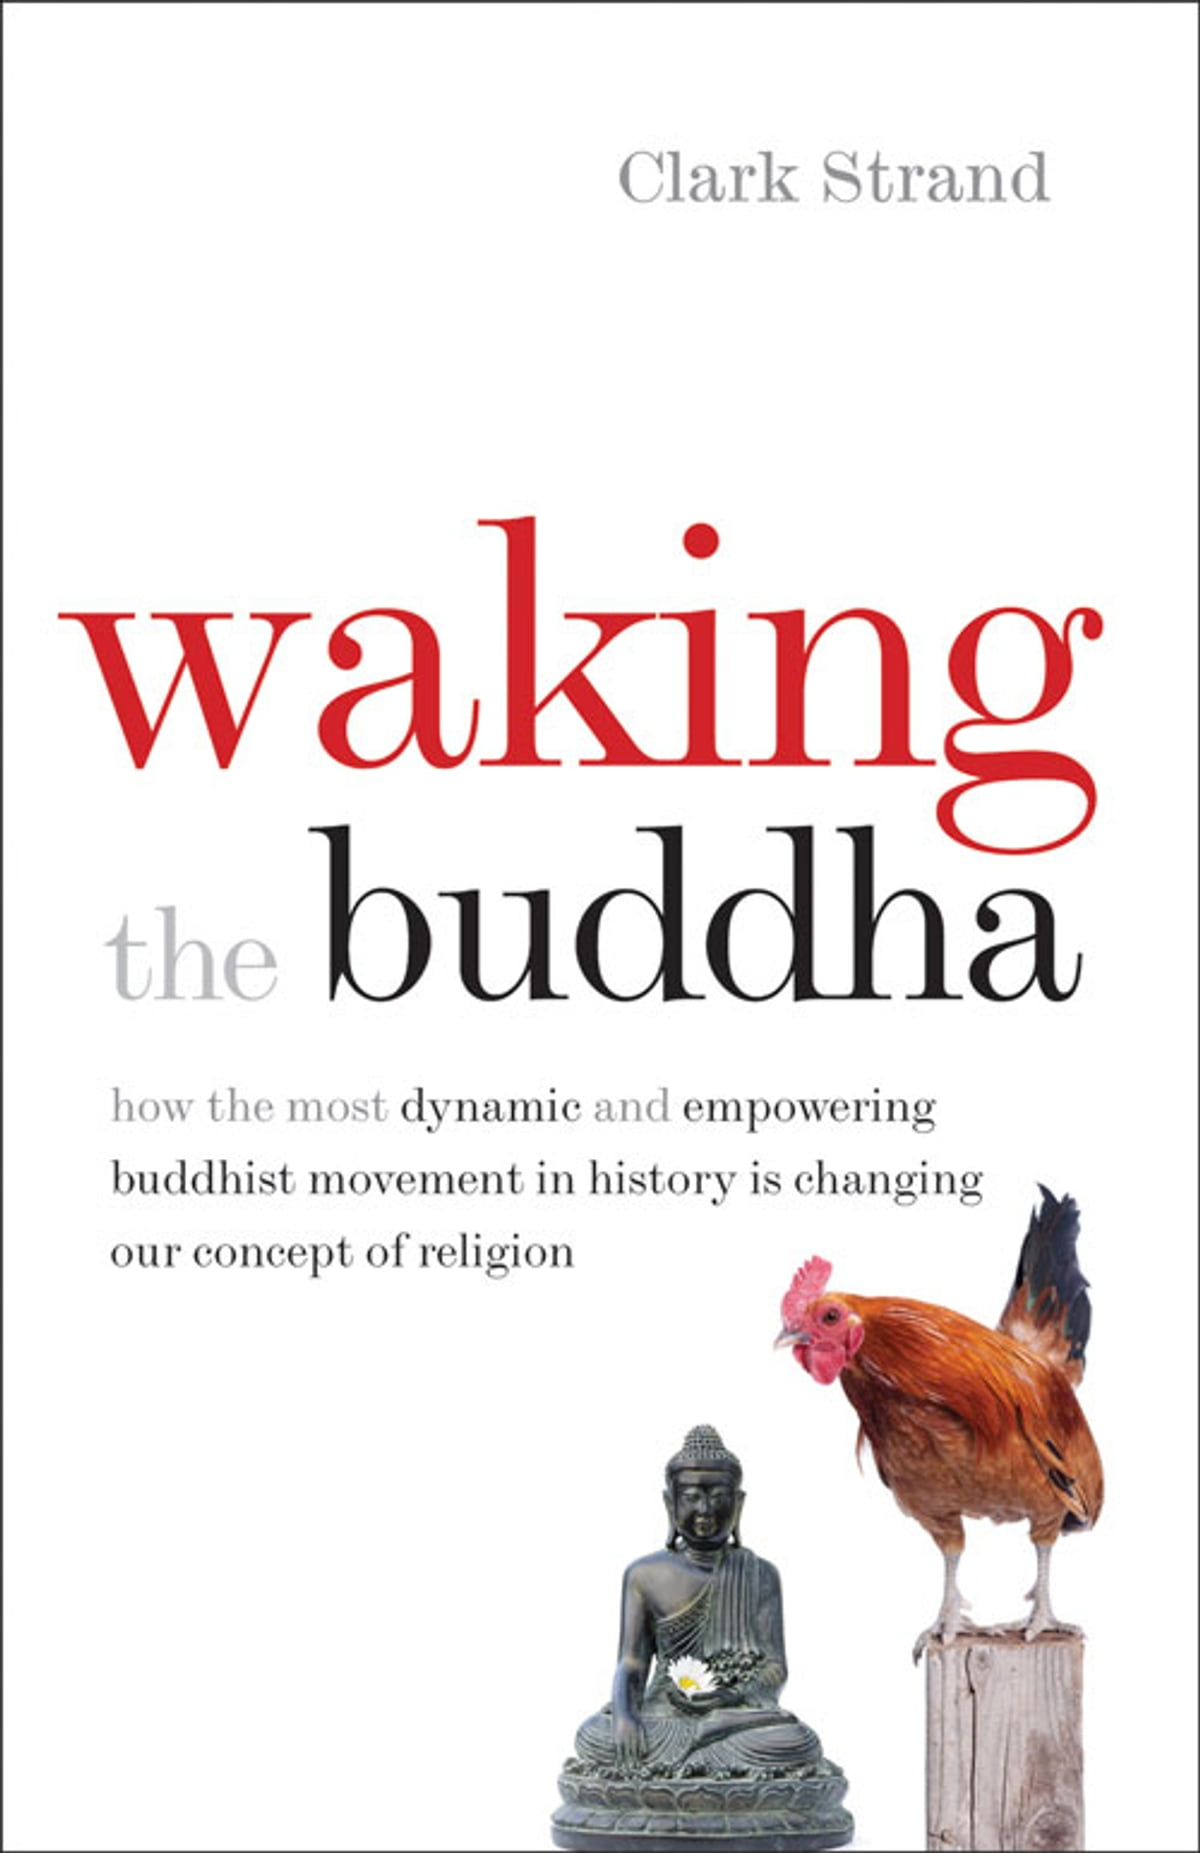 Waking The Buddha How The Most Dynamic And Empowering Buddhist Movement In History Is Changing Our Concept Of Religion By Clark Strand